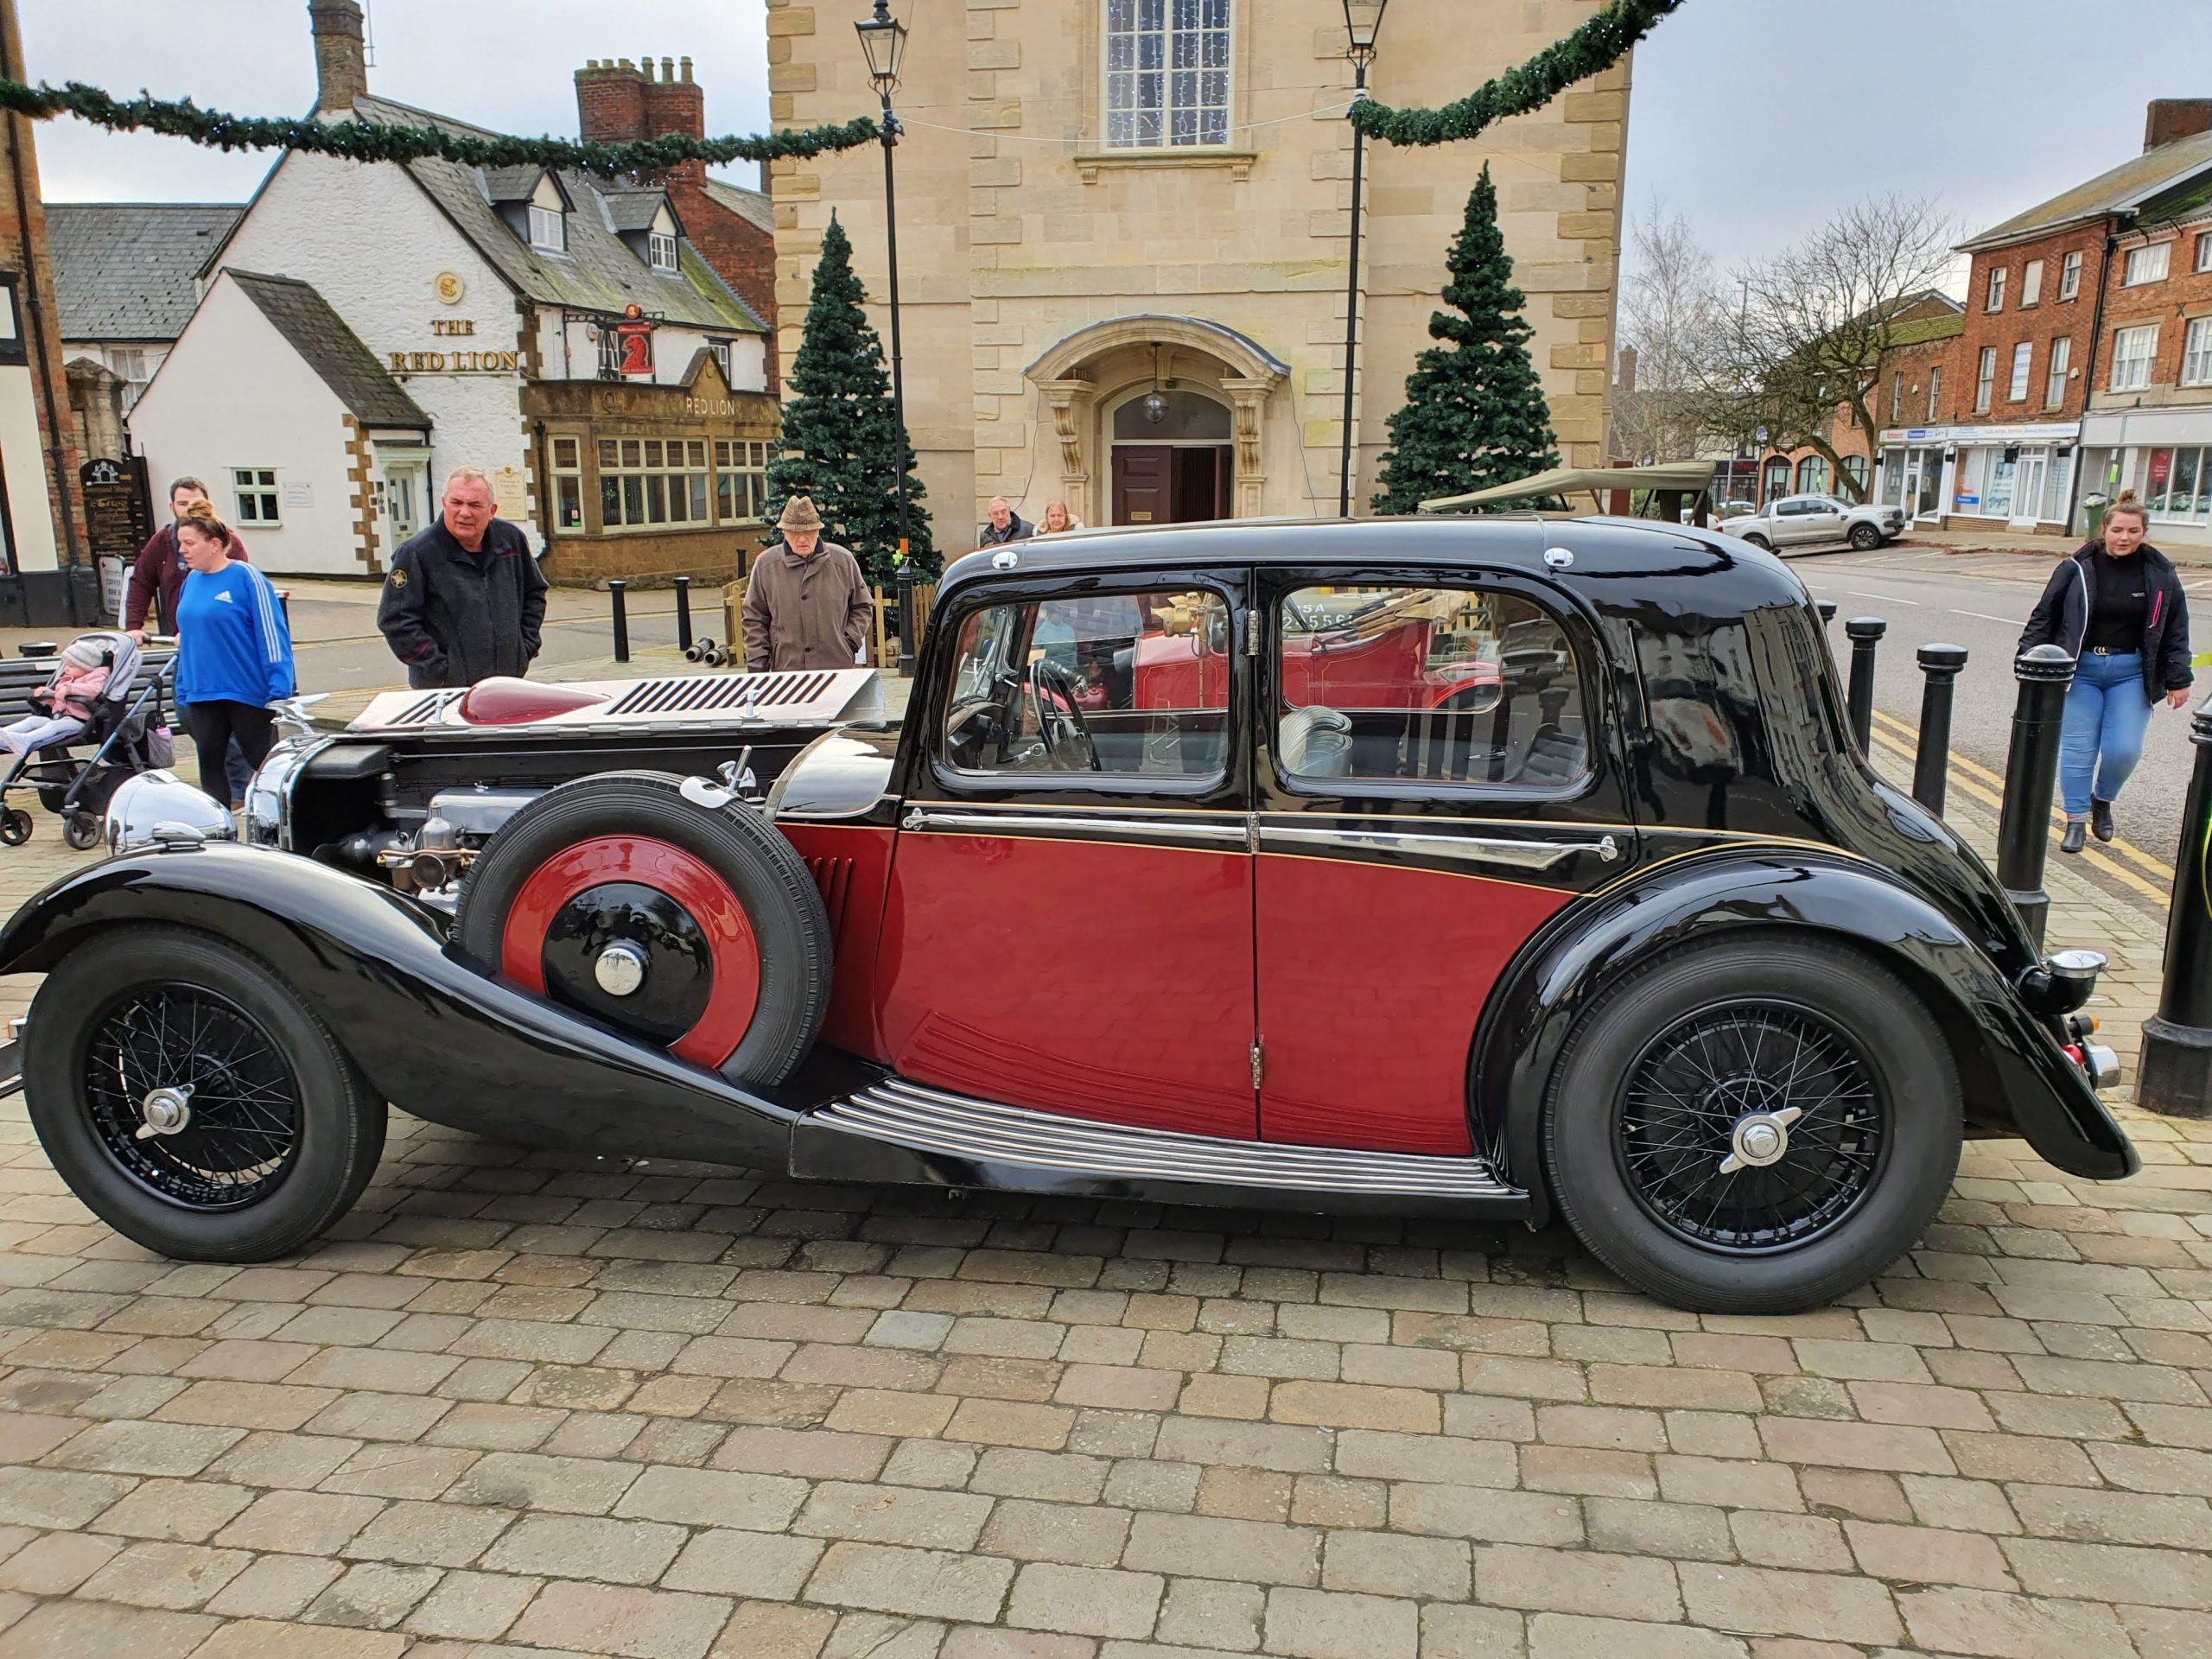 1938 Alvis at the Brackley Classic Cars in the Piazza event, 2019.